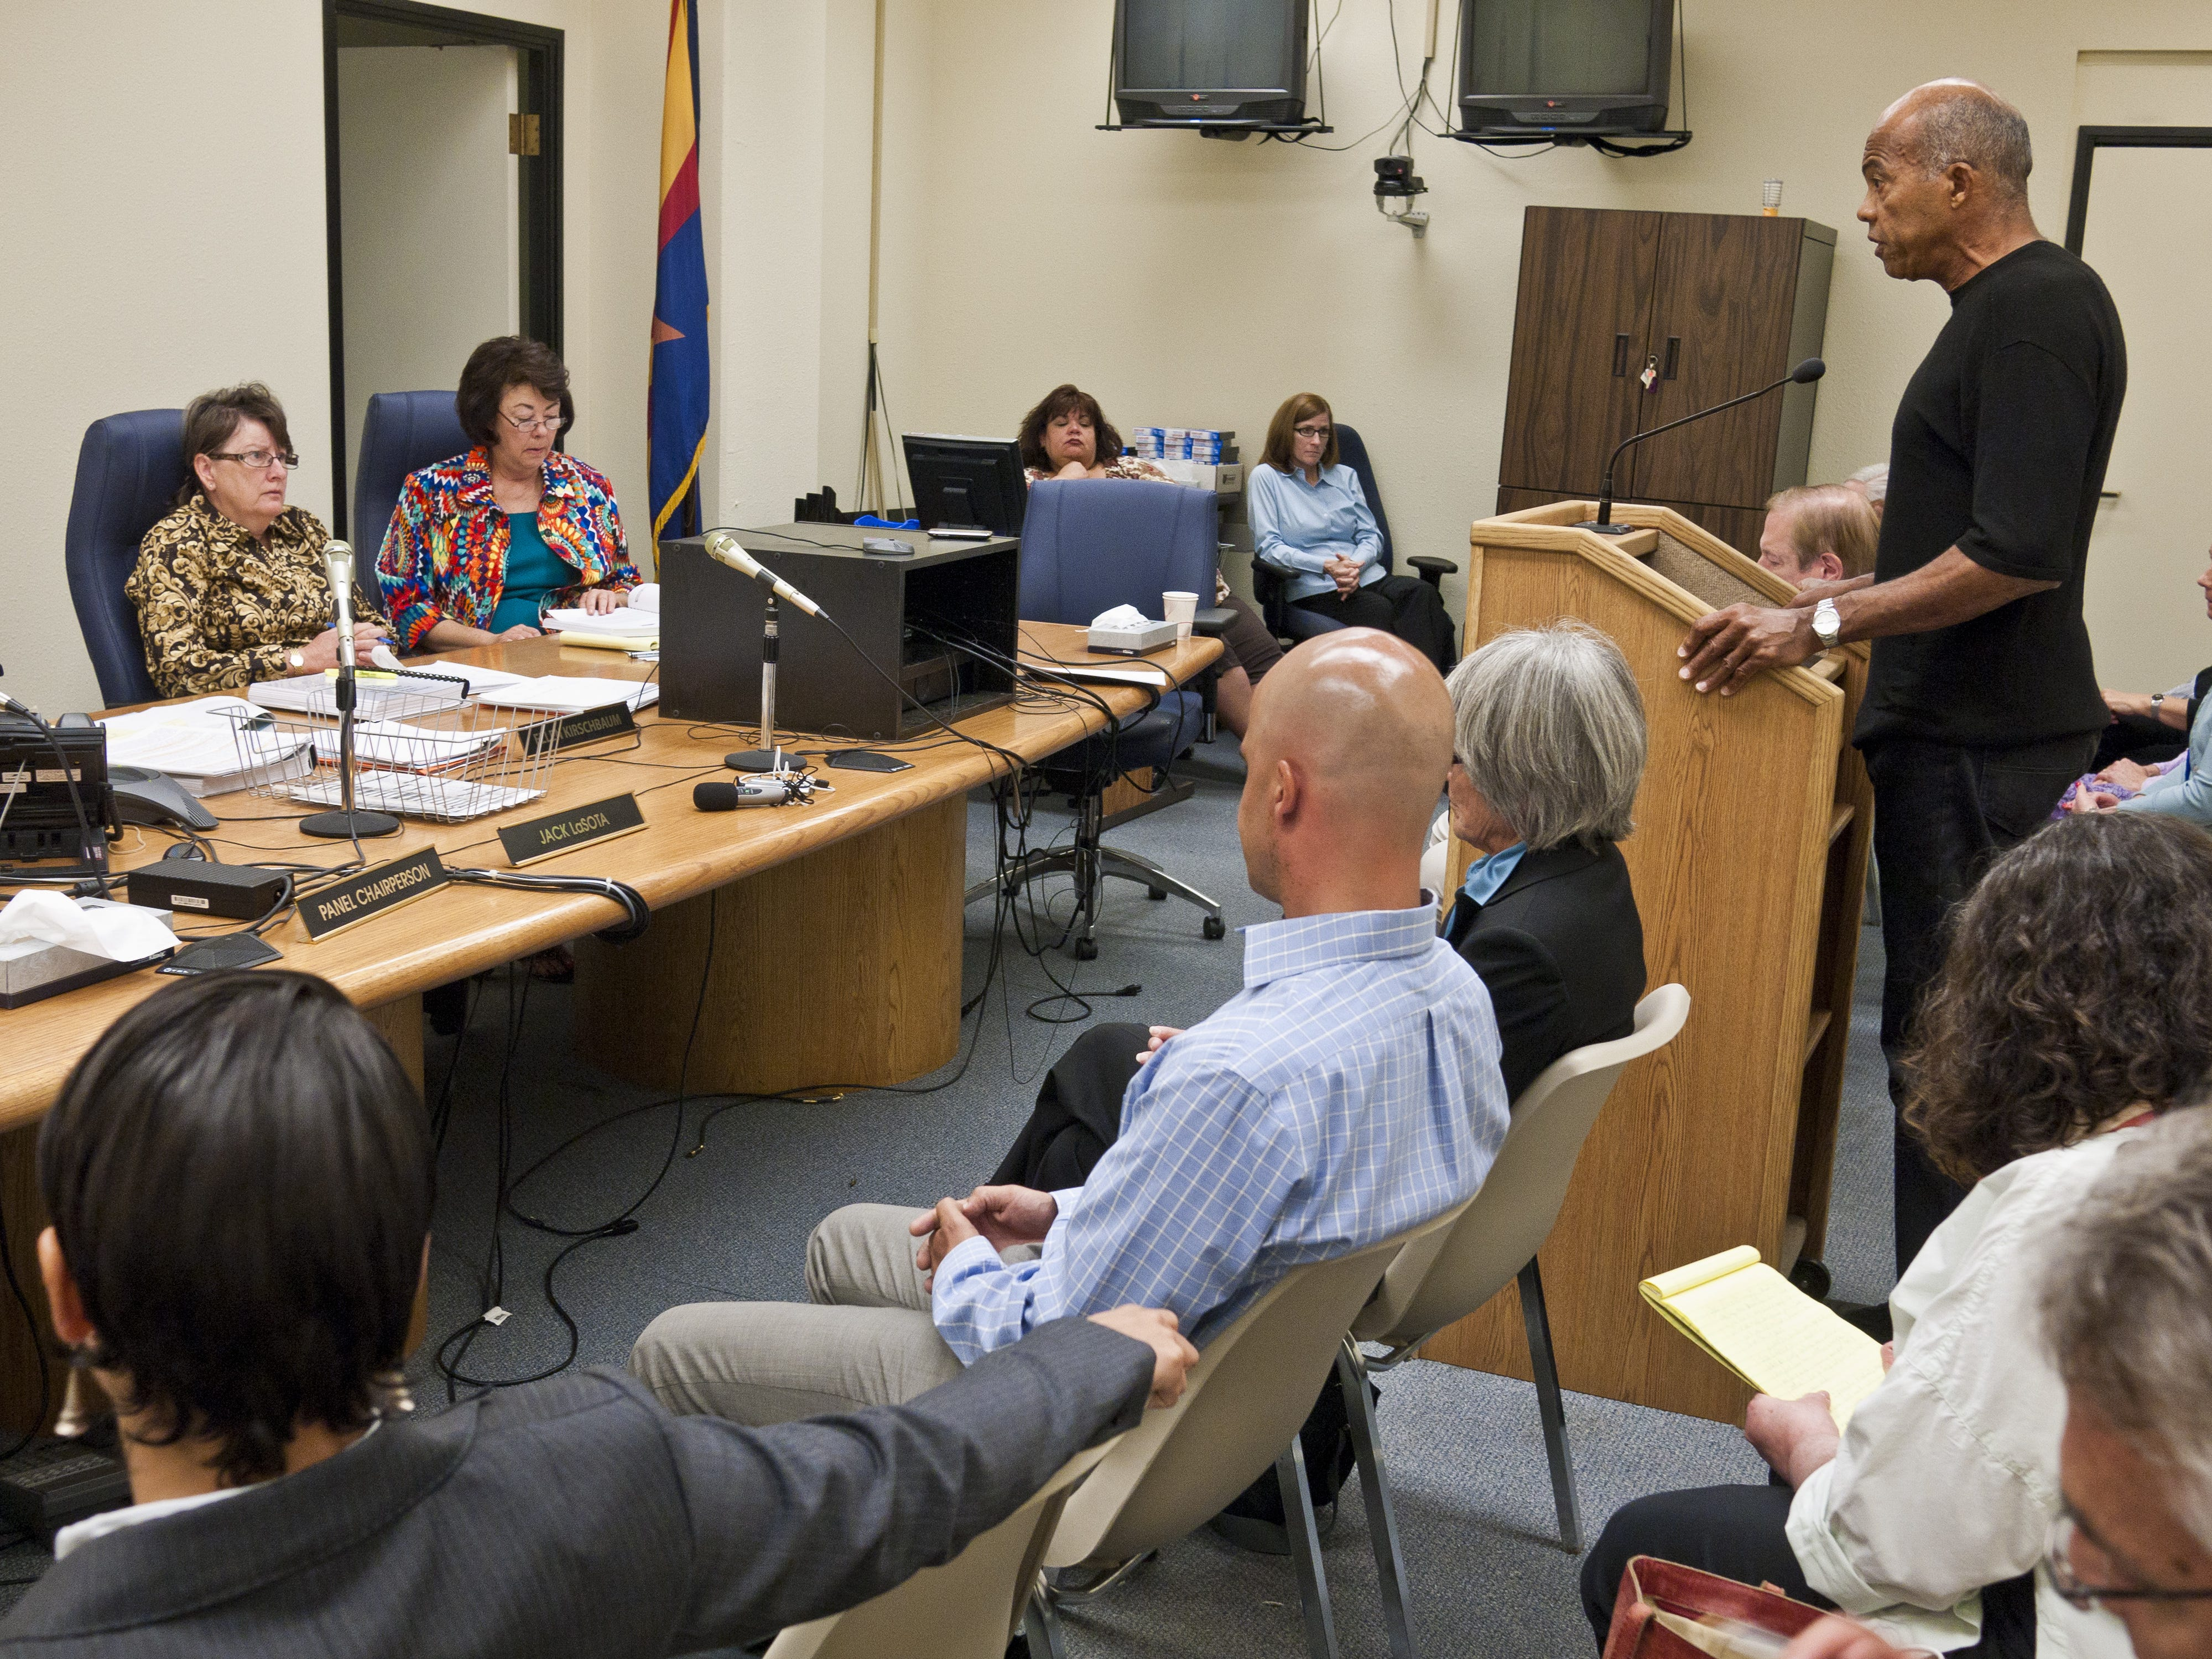 """John Edgar Wideman speaks on behalf of his son, Jacob Wideman, during Jacob's parole hearing at the Arizona Board of Executive Clemency in May 2011 in Phoenix. In August 1986, Jacob Wideman, then 16, stabbed another teen to death for no other reason than he """"had a bad year"""" while on a summer-camp-sponsored trip to Flagstaff."""